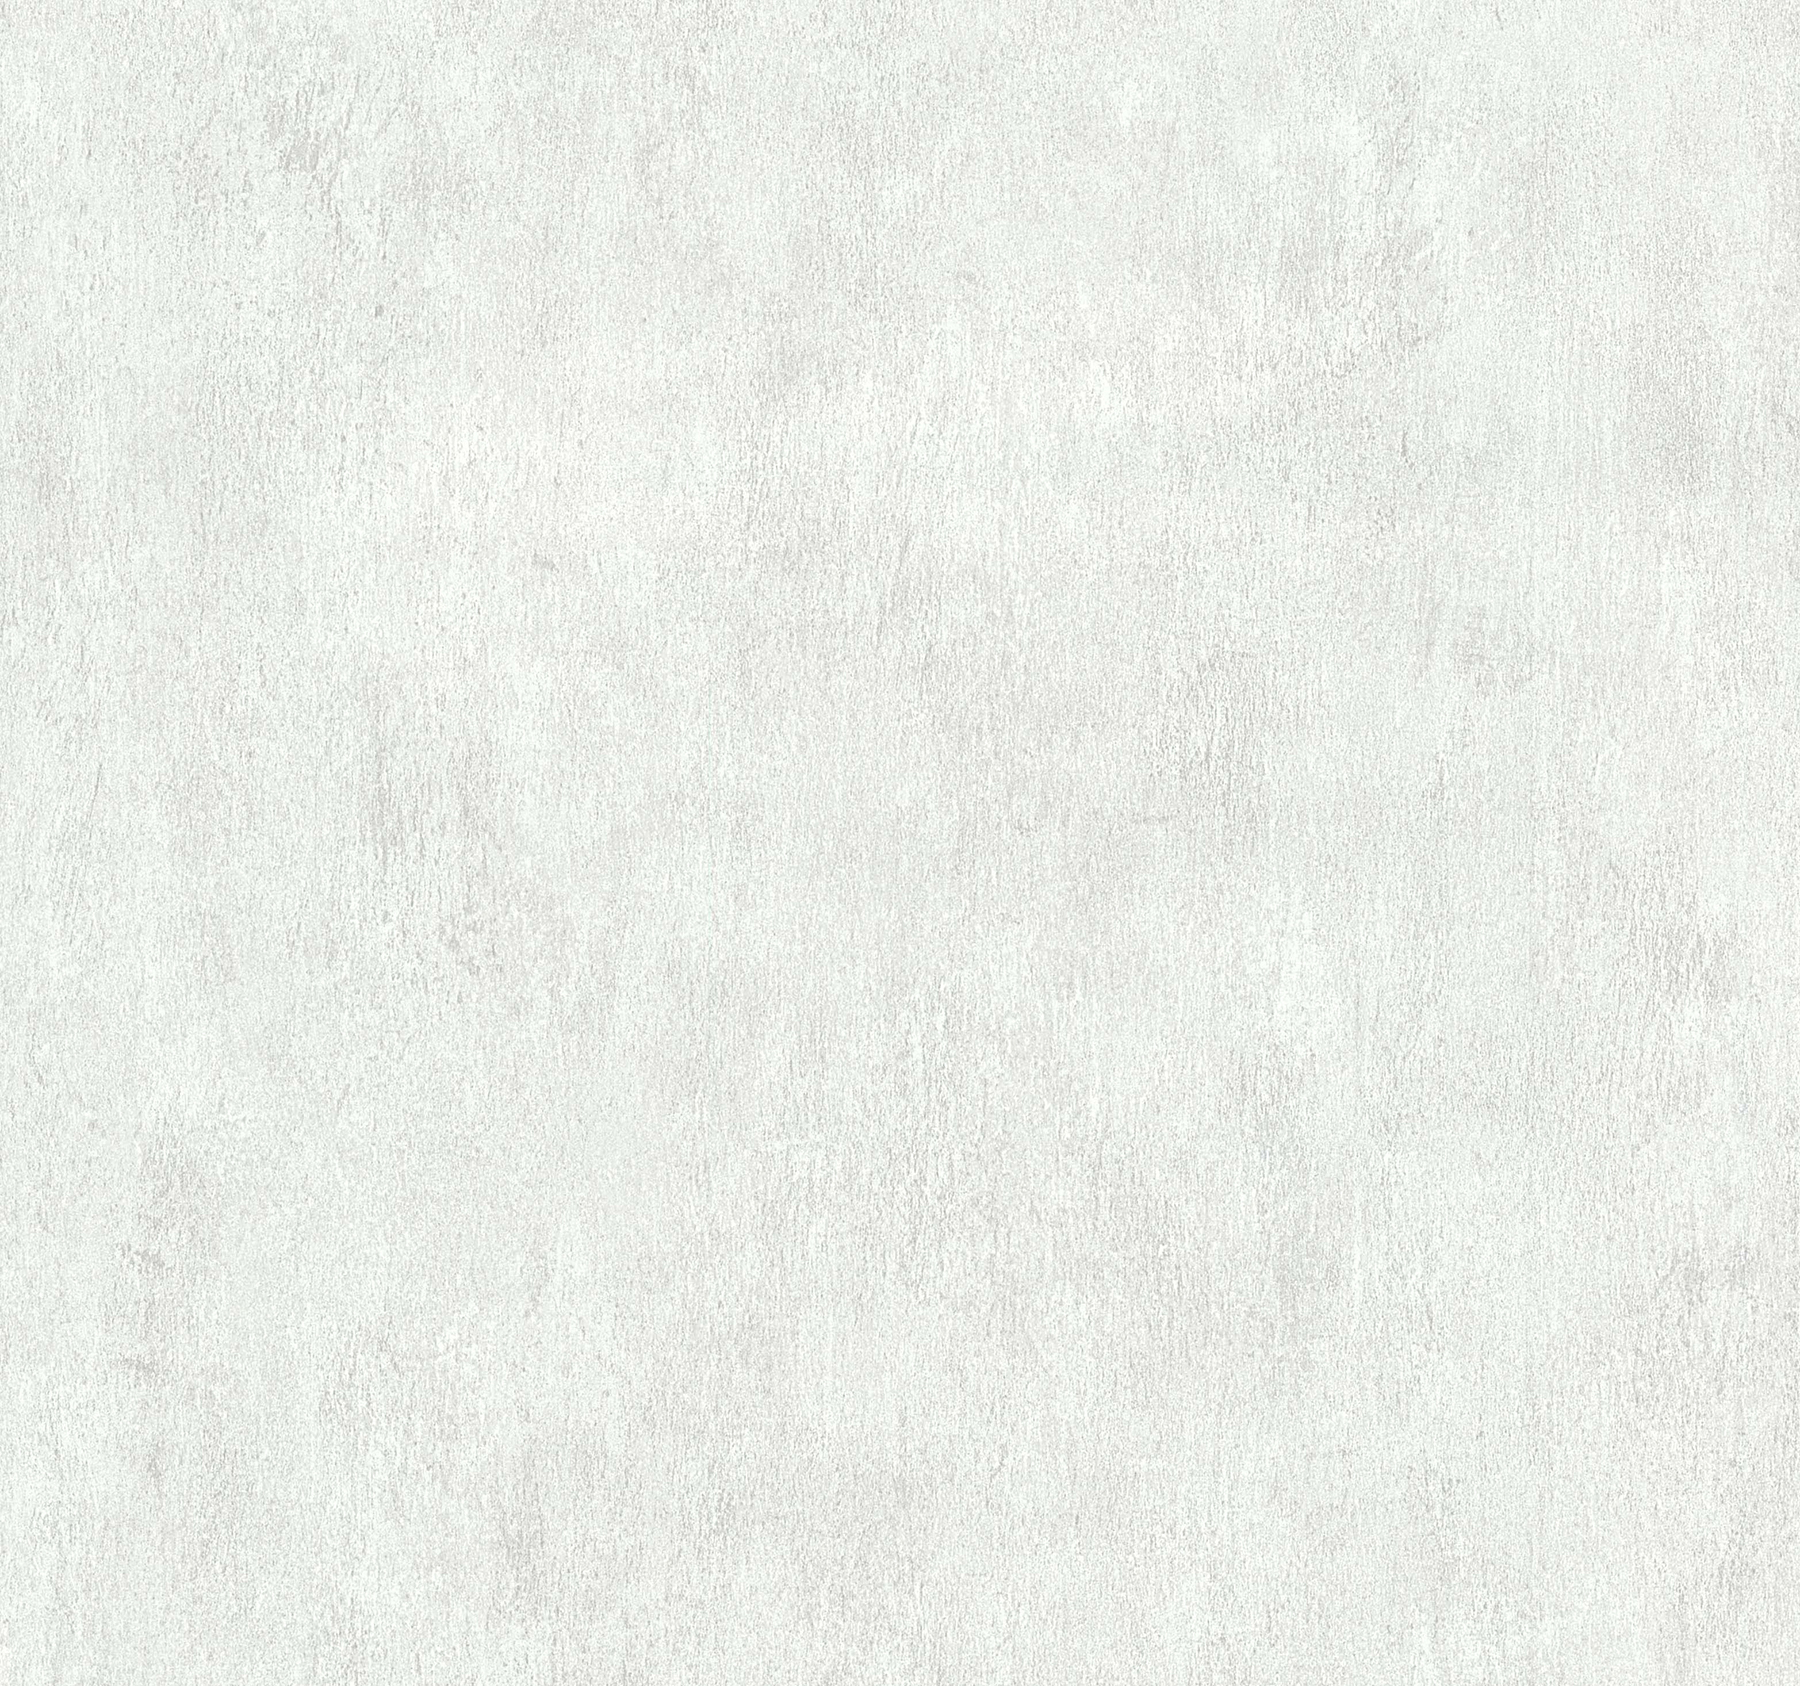 Picture of Brubeck Off-White Distressed Texture Wallpaper